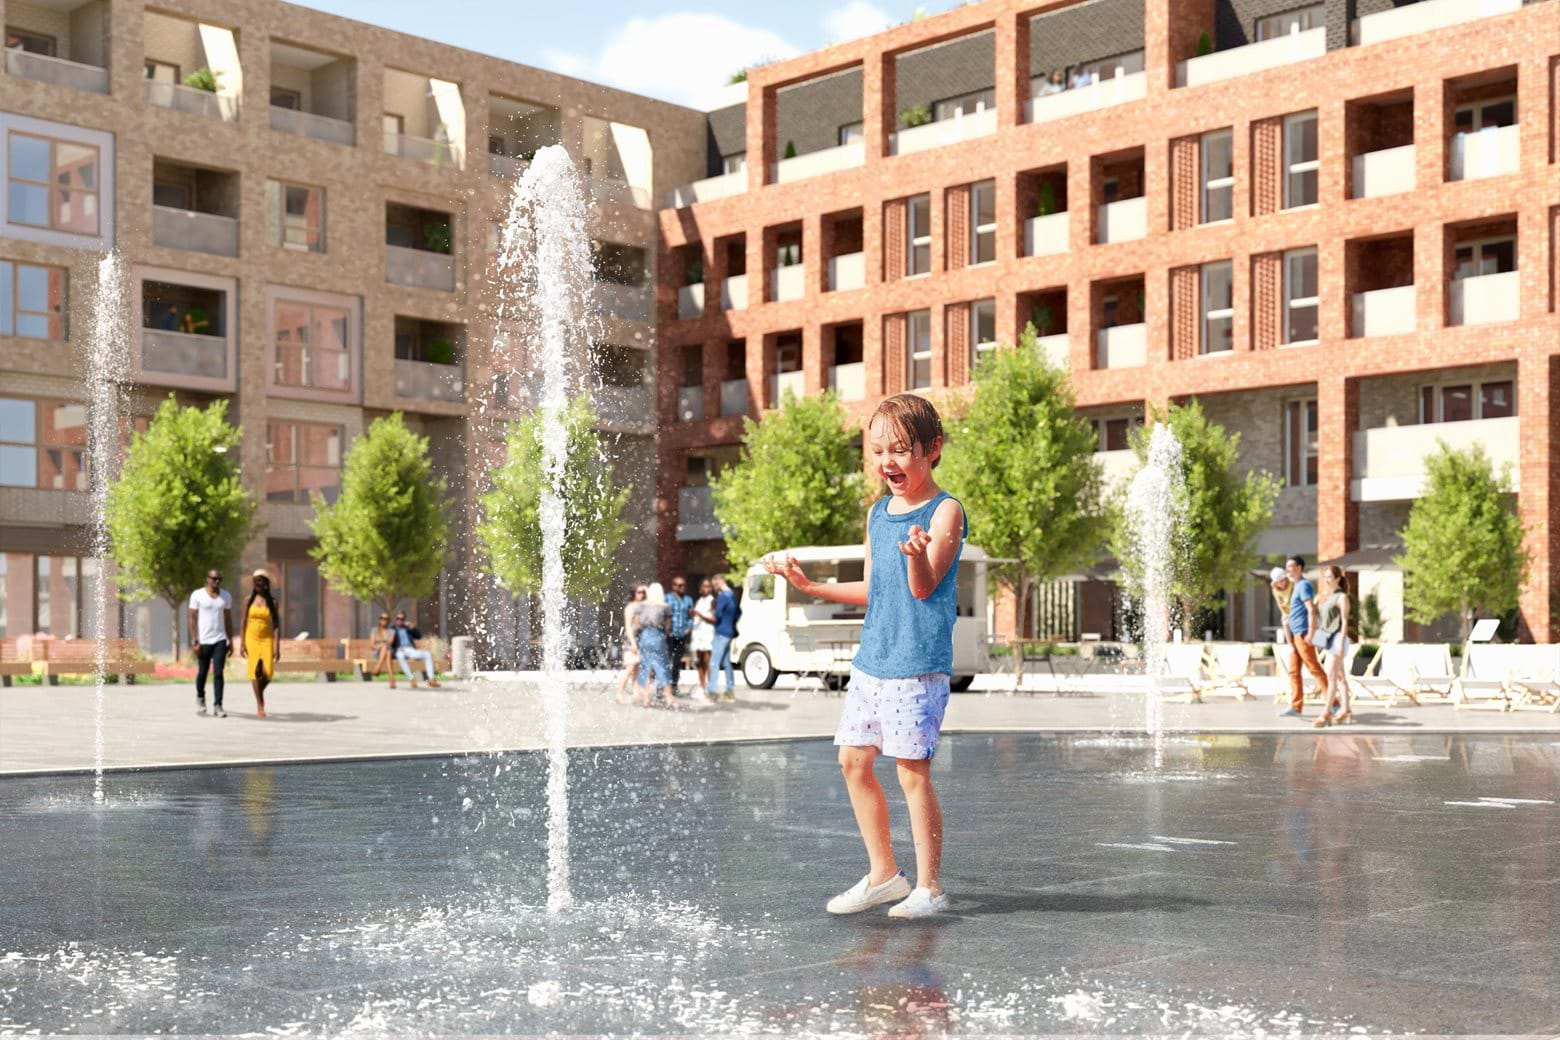 Computer Generated Image of Cygnet Square at Southmere